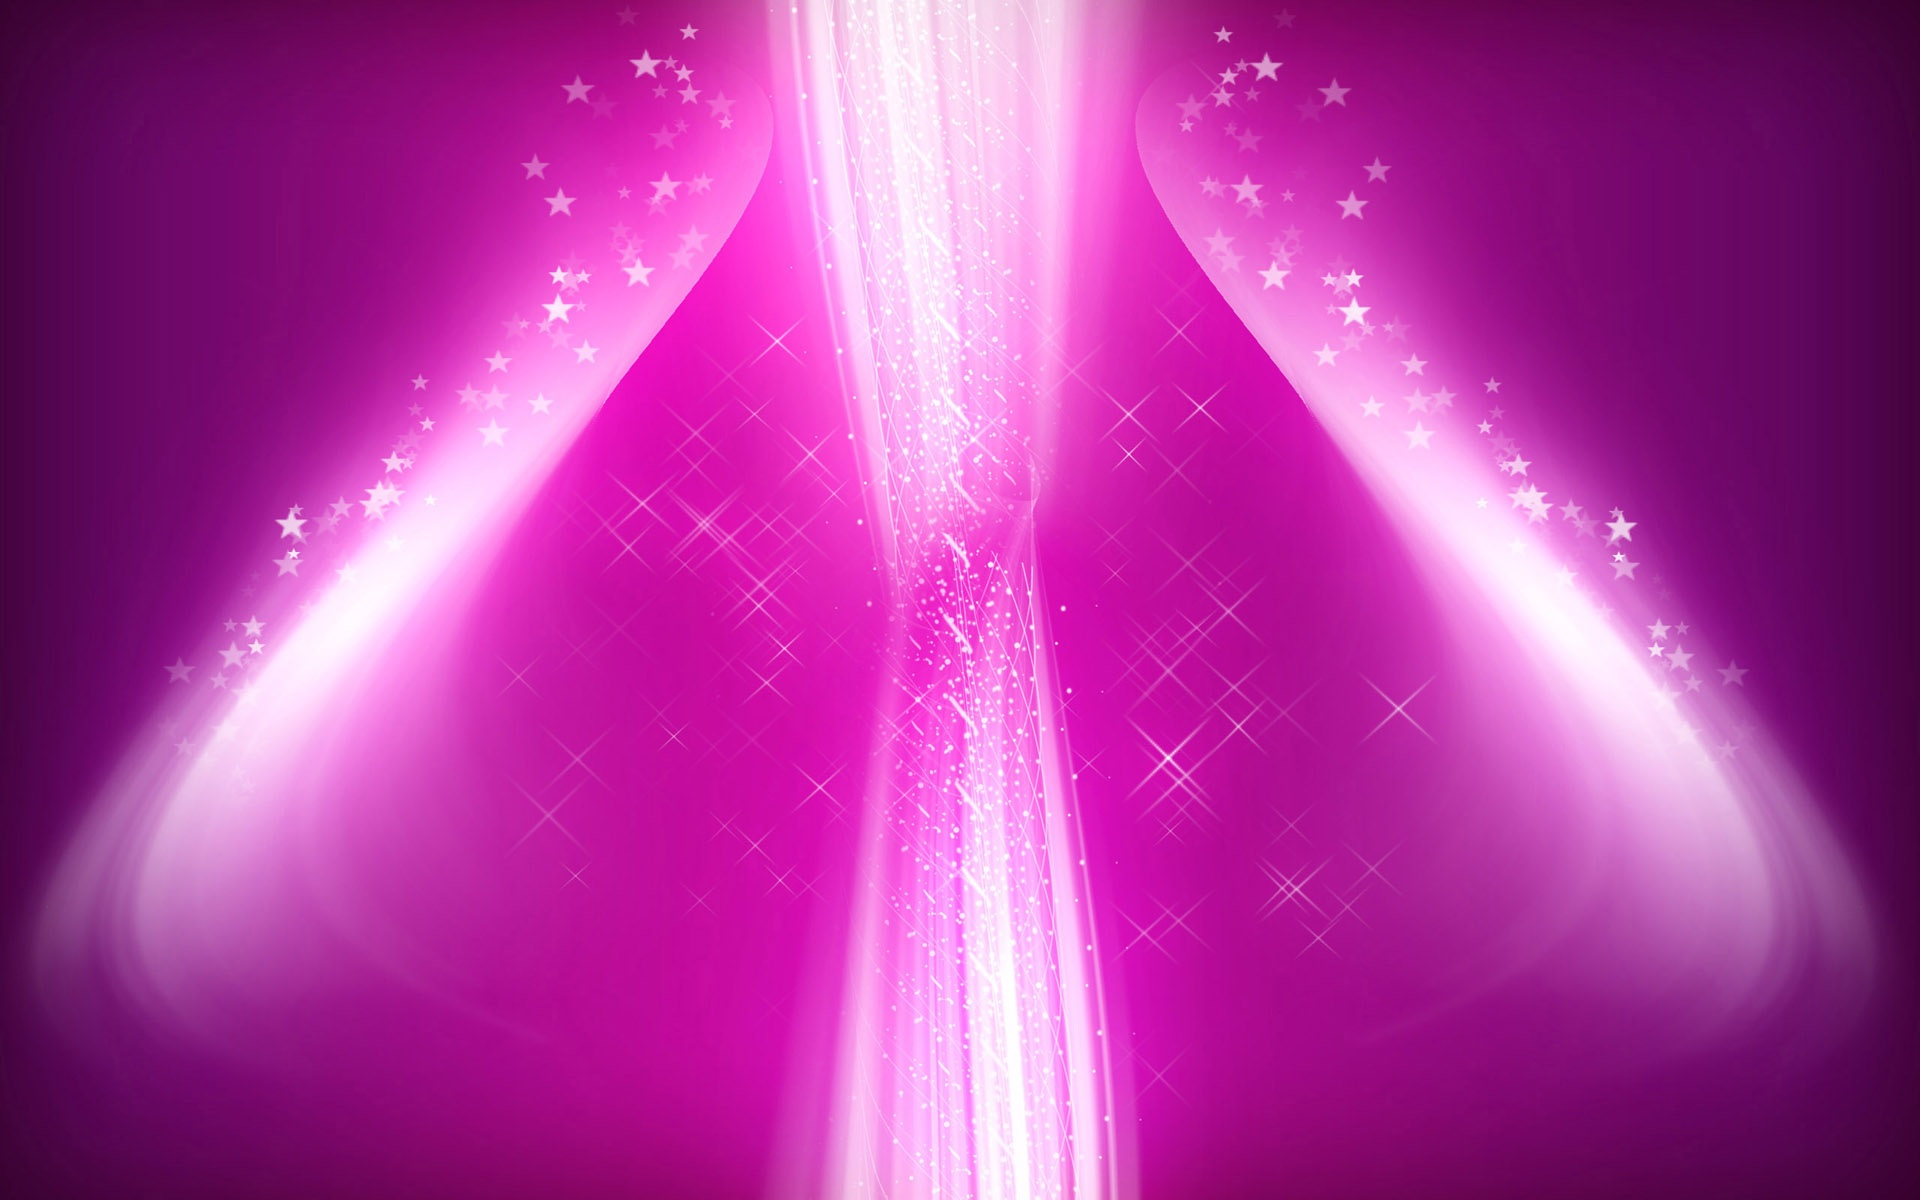 Pink Glow Abstract Wallpapers   HD Wallpapers Wallpaper